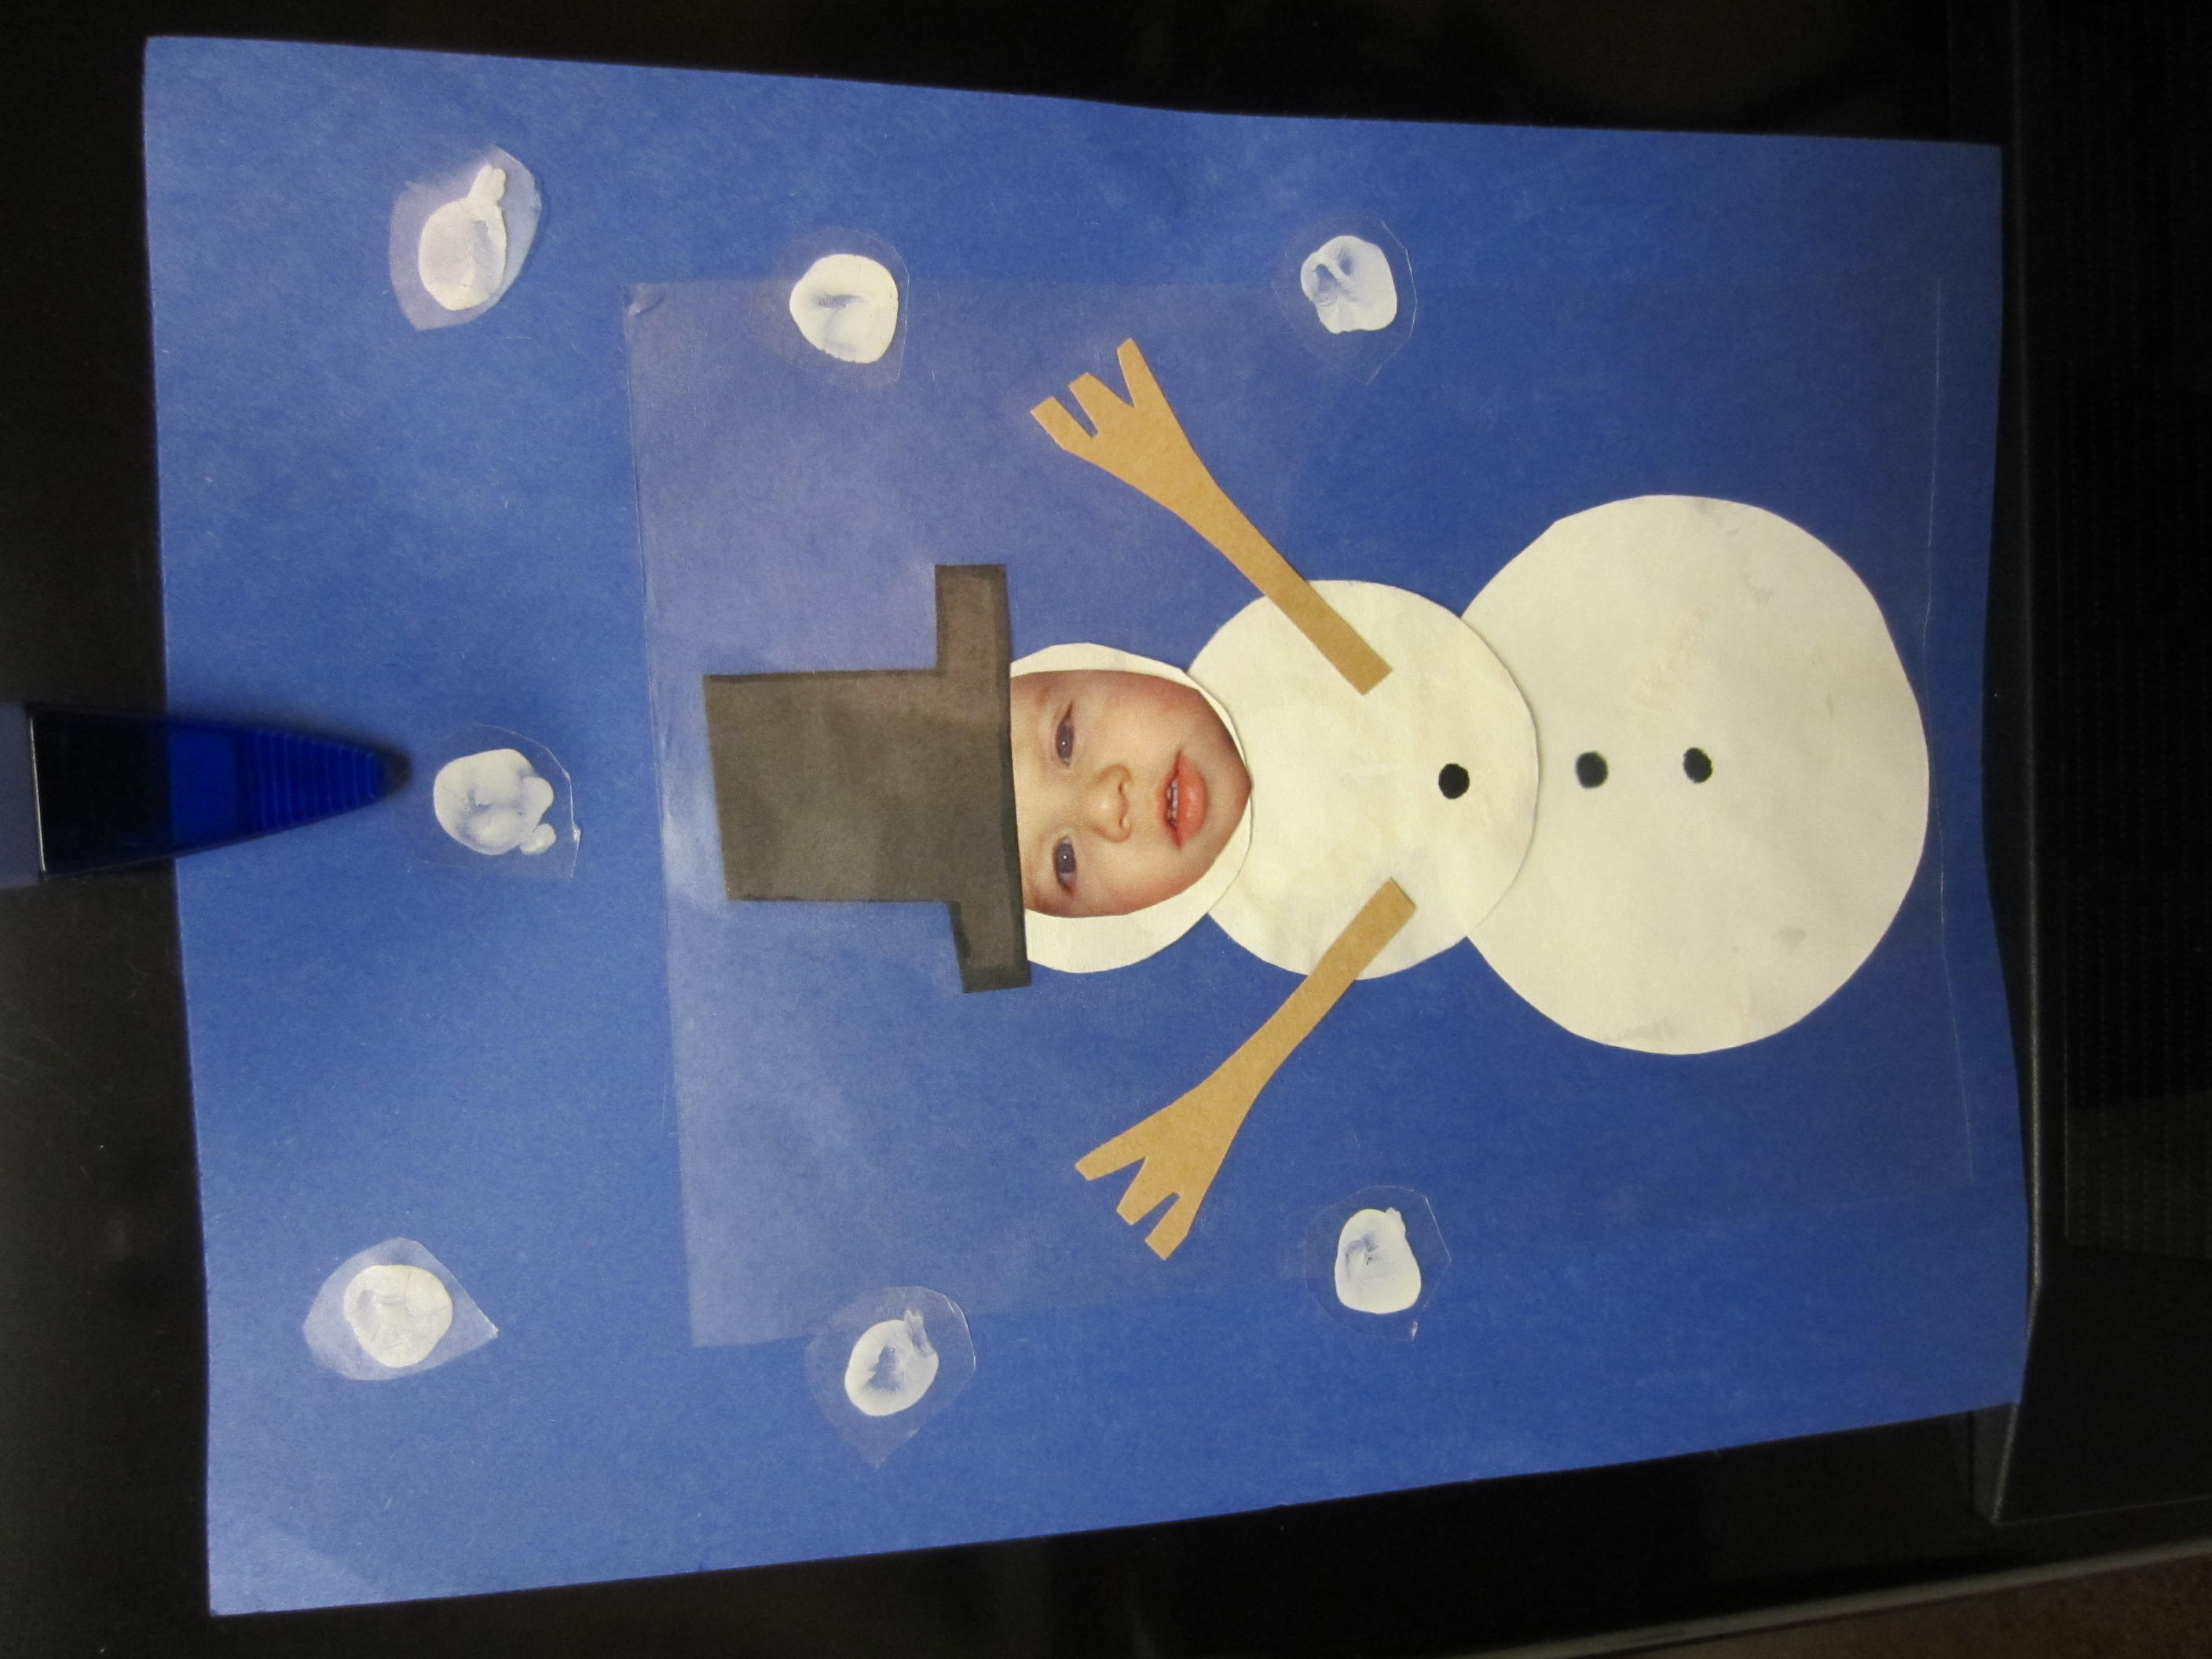 classic magic moments in parenting 2 snowman art family